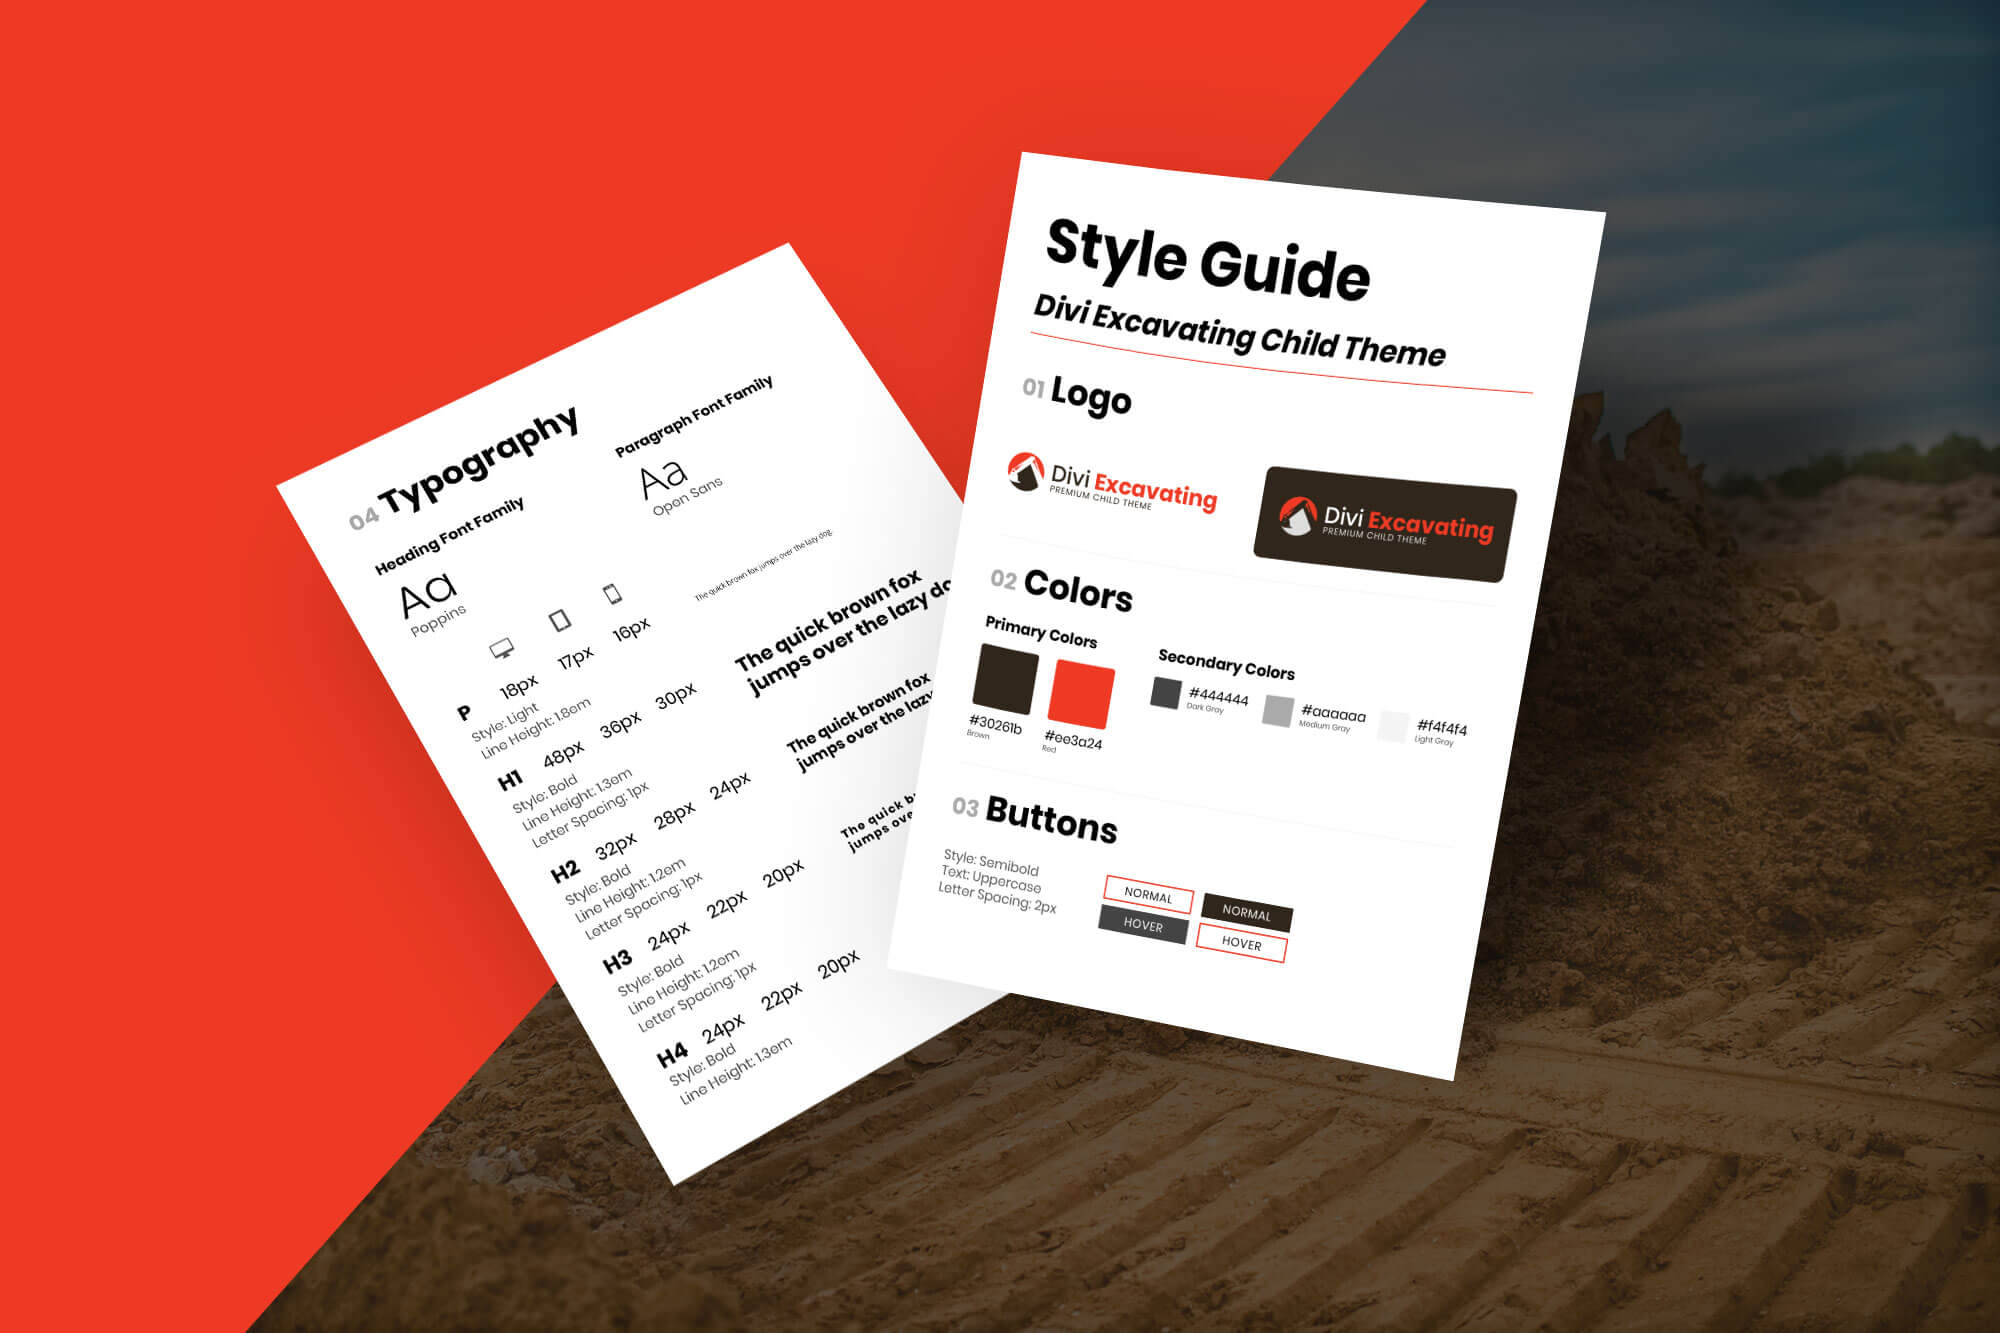 Divi Excavating Style Guide Mockup